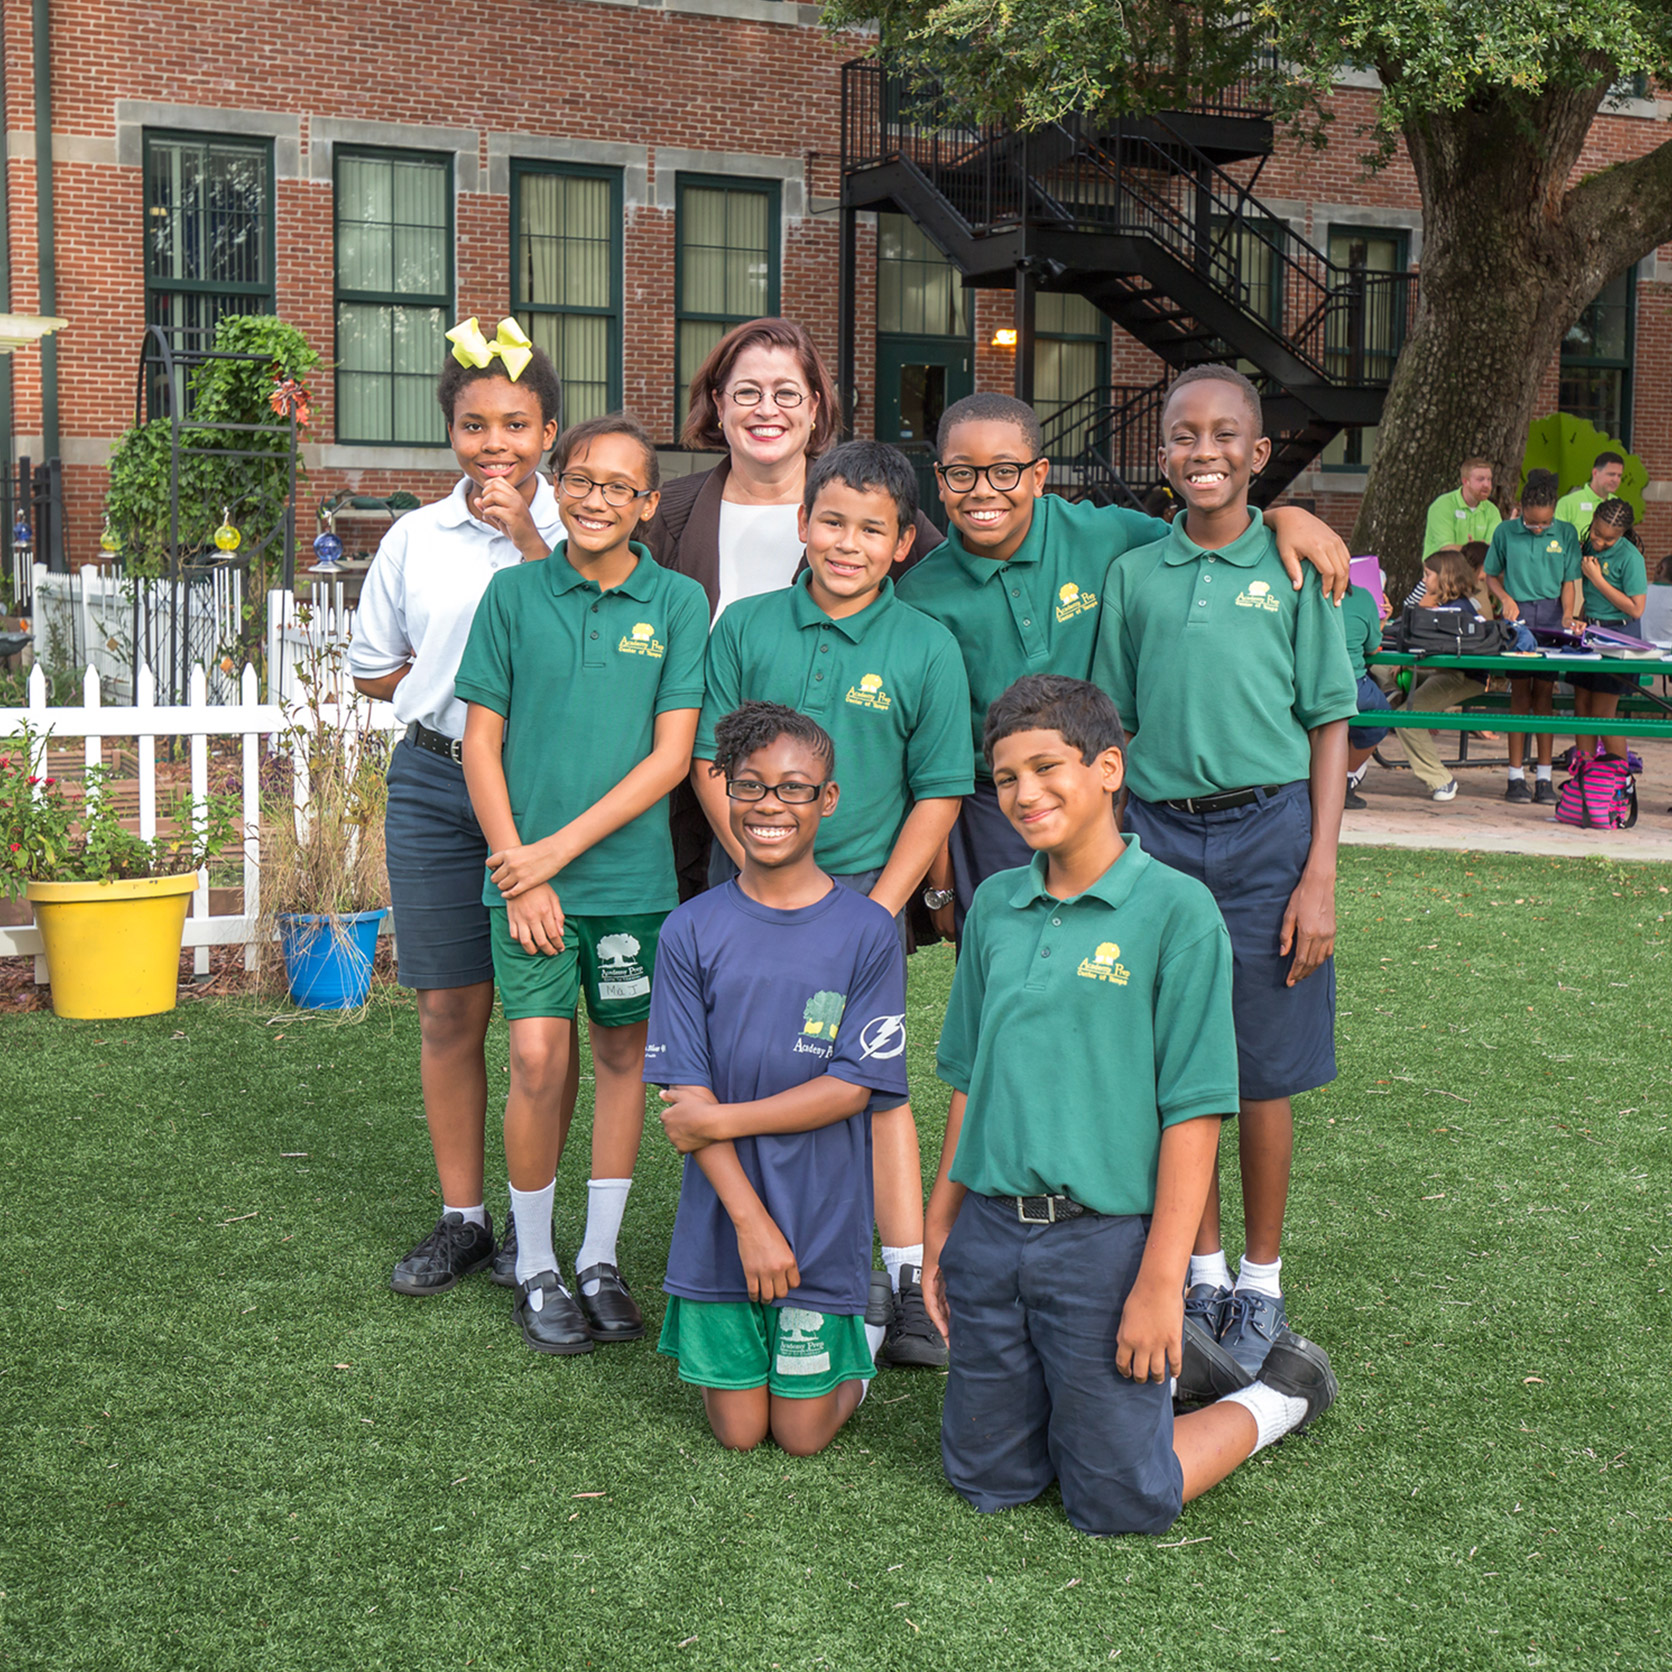 Students at Academy Prep Center of St. Petersburg